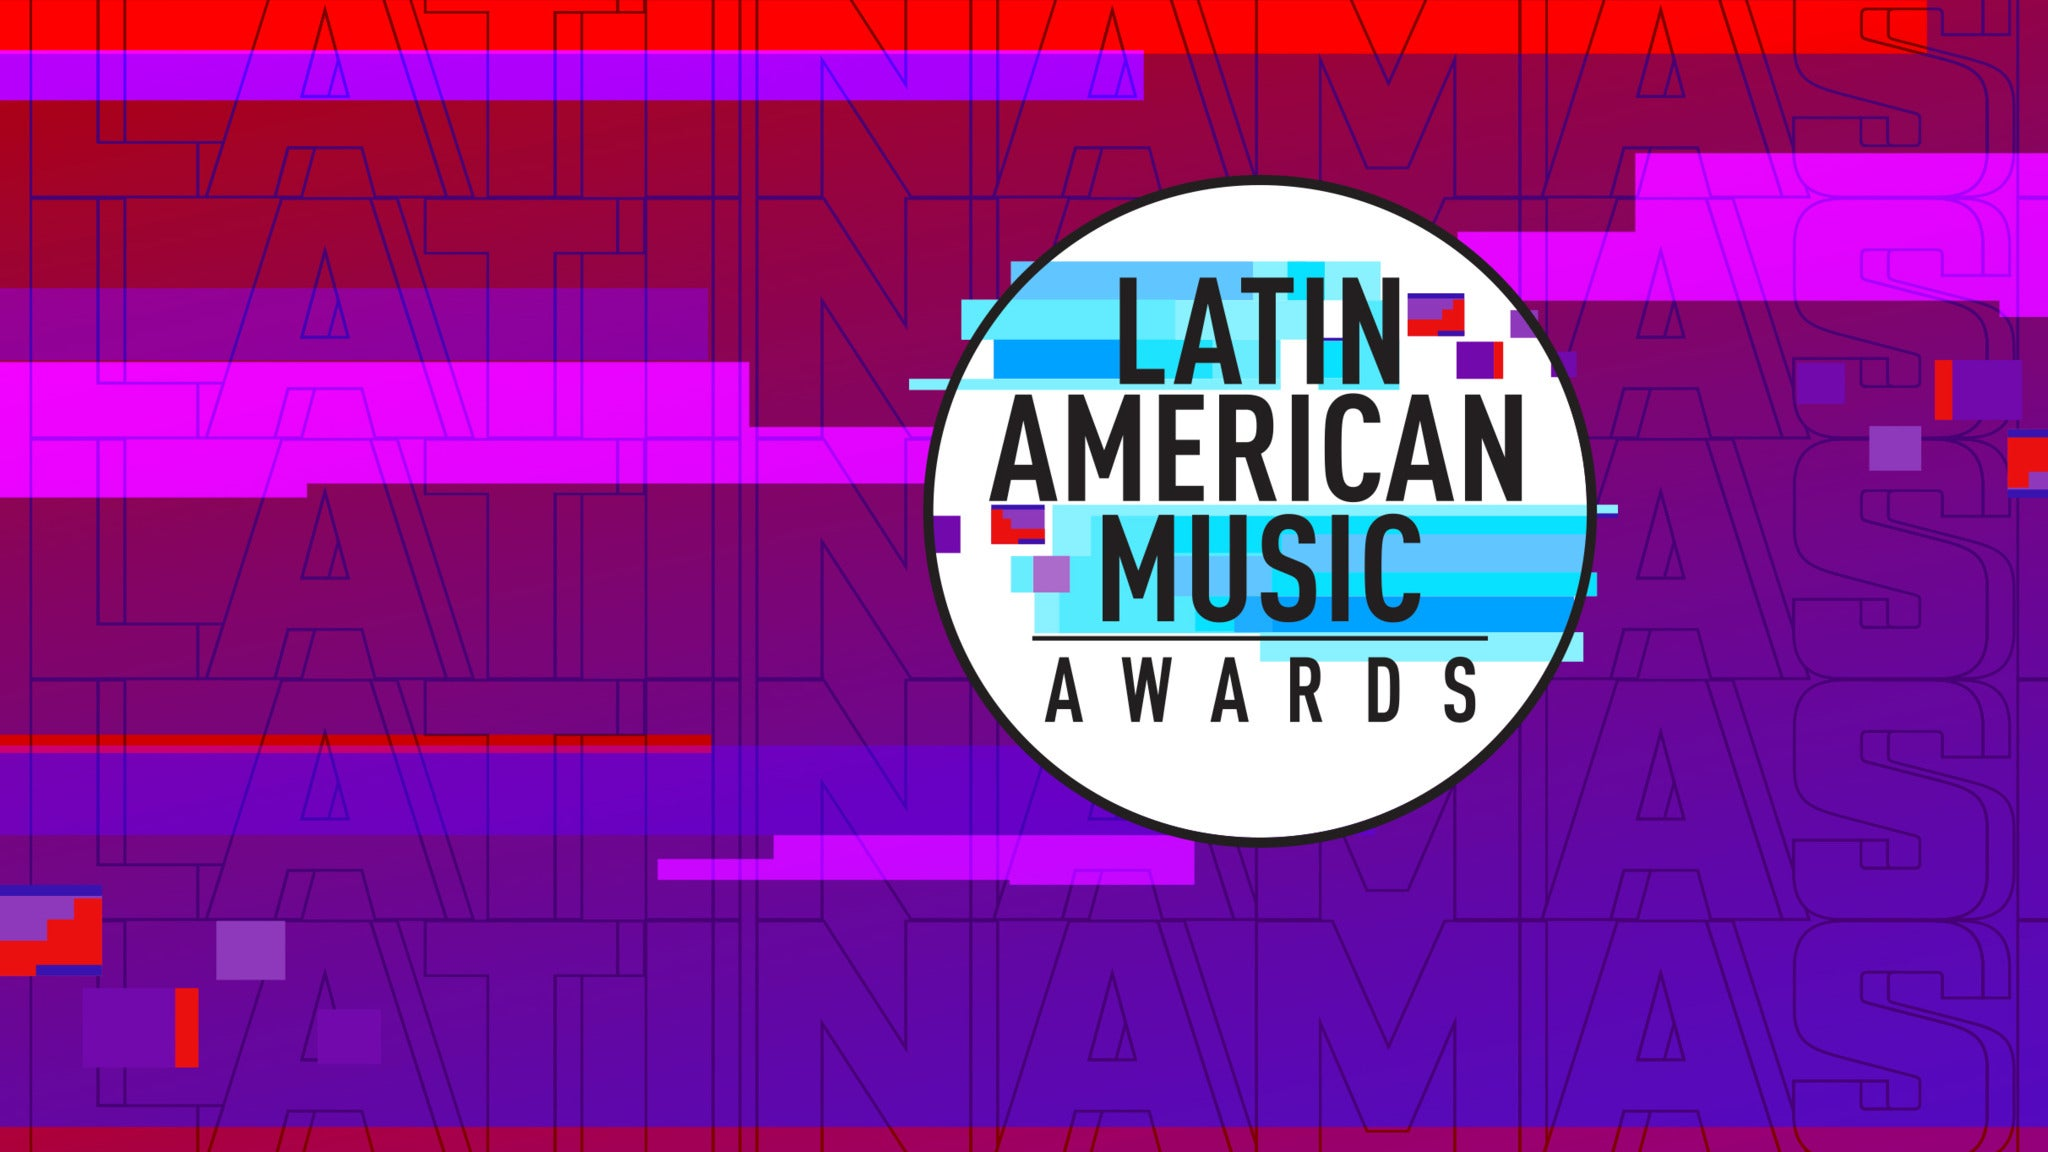 Latin American Music Awards 2019 at Dolby Theatre